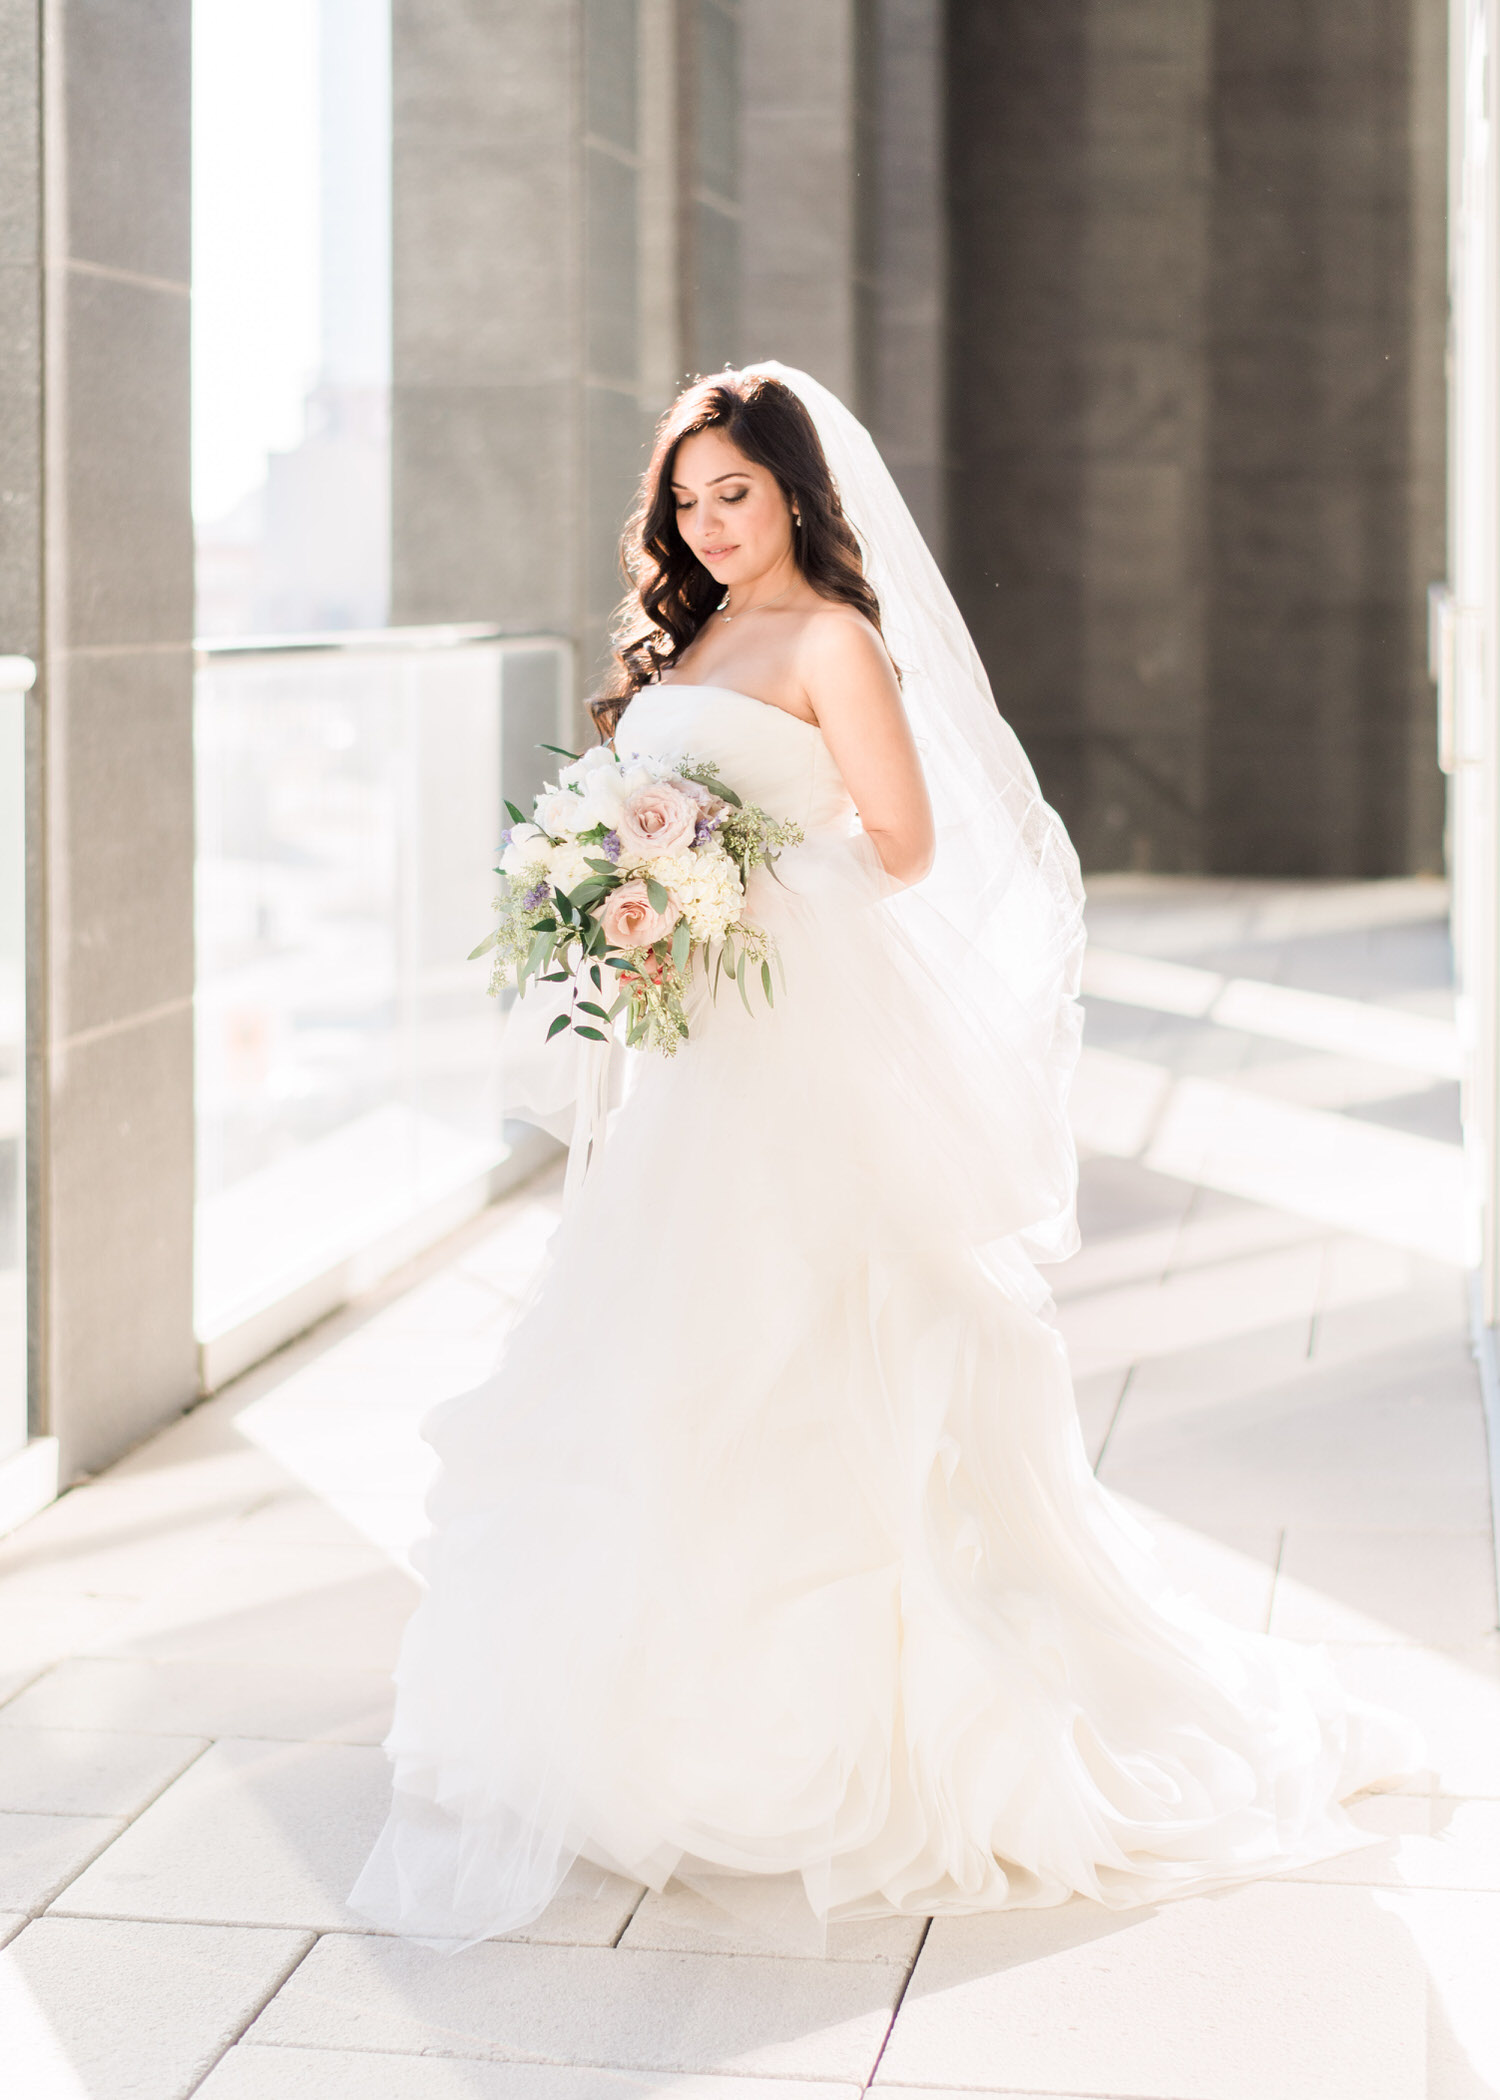 Light and airy portrait of bride before her Toronto elopement at Delta hotel